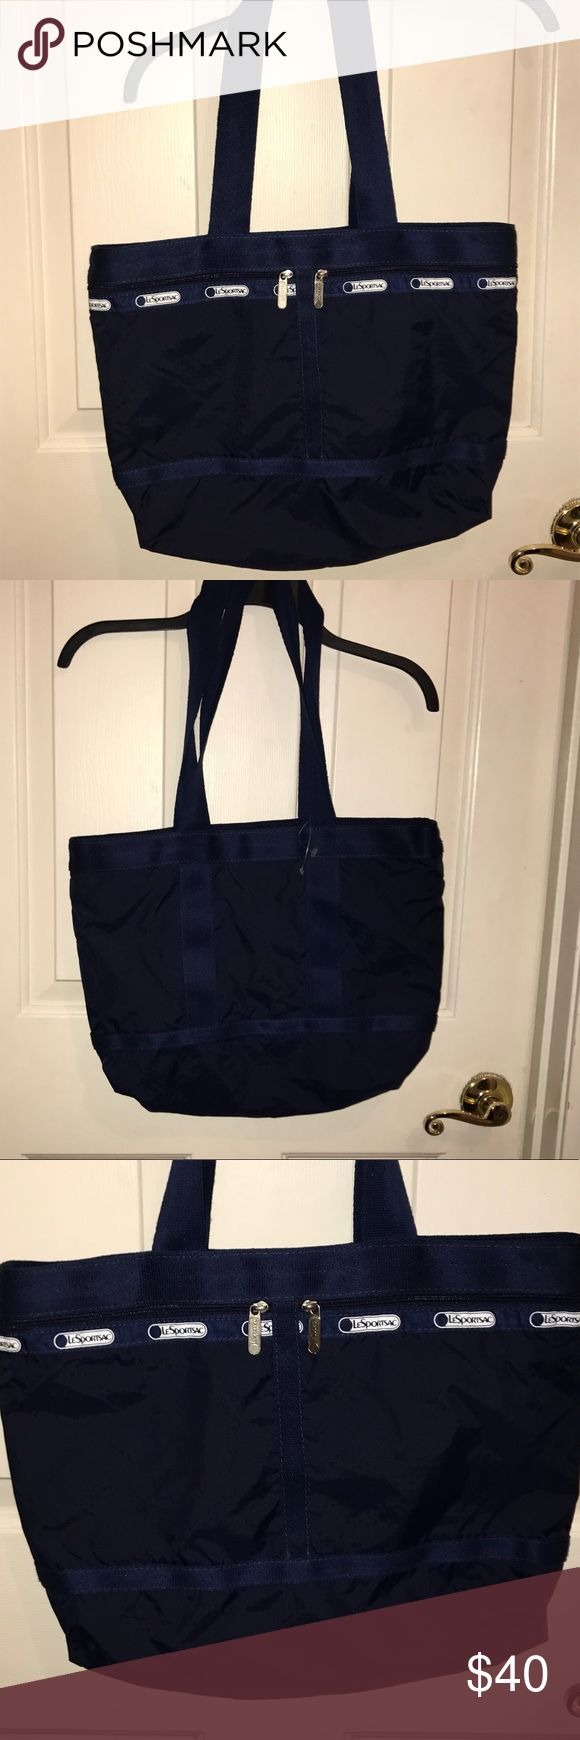 "⚡️SALE⚡️NWOT 💚LeSPORTSAC💚Large one the go Tote ⚡️FLASH SALE⚡️NWOT 💚LeSPORTSAC💚Blue Large On -The-Go Tote. Two zipper outer compartments. One zippered enter compartment. Measures 15.5""! x  17"" x 7.5""z Has been in storage so does smell a little musty and needs to be washed but BRAND NEW‼️I've just lost the original $90 tag Lesportsac Bags Totes"